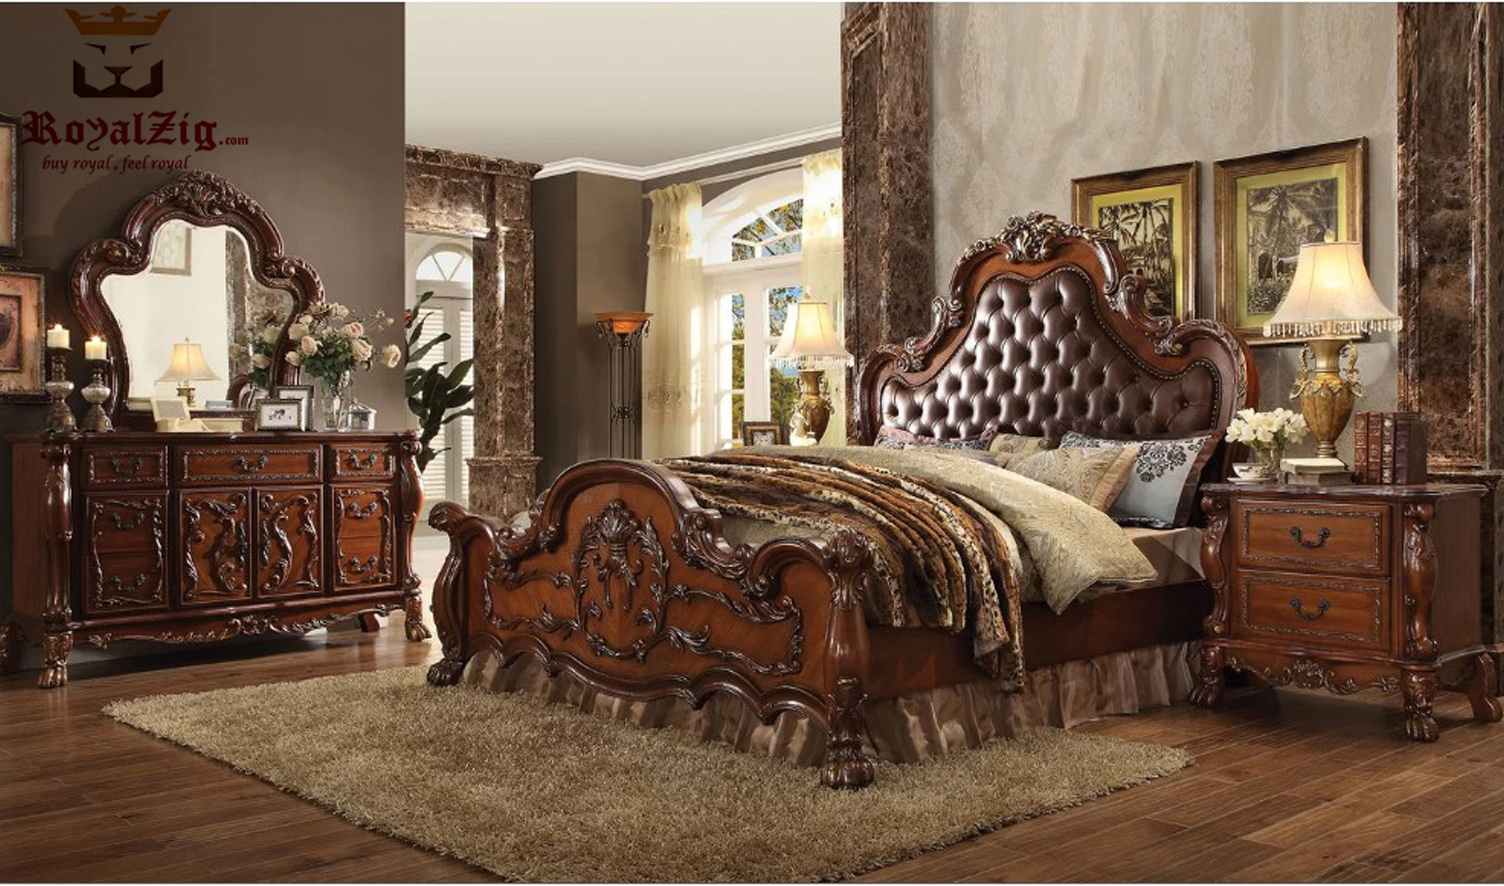 Antique Furniture Online India Wooden Vintage Furniture Designs